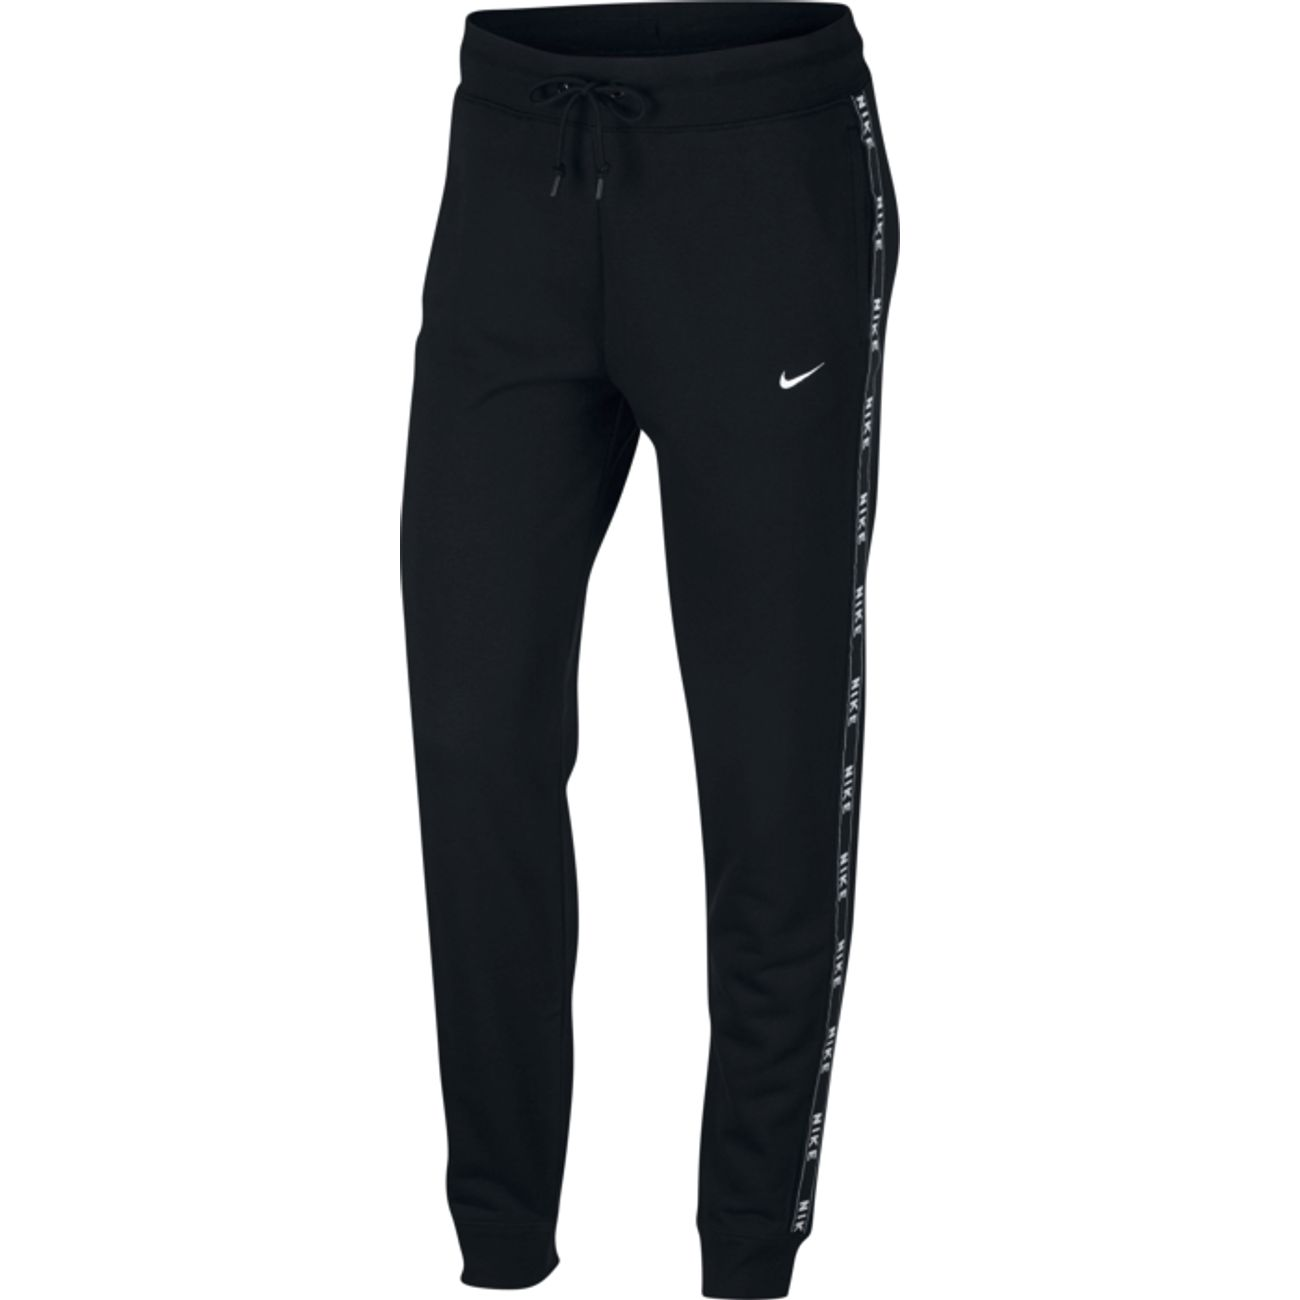 PANTALON Training femme NIKE NSW PANT LOGO TAPE